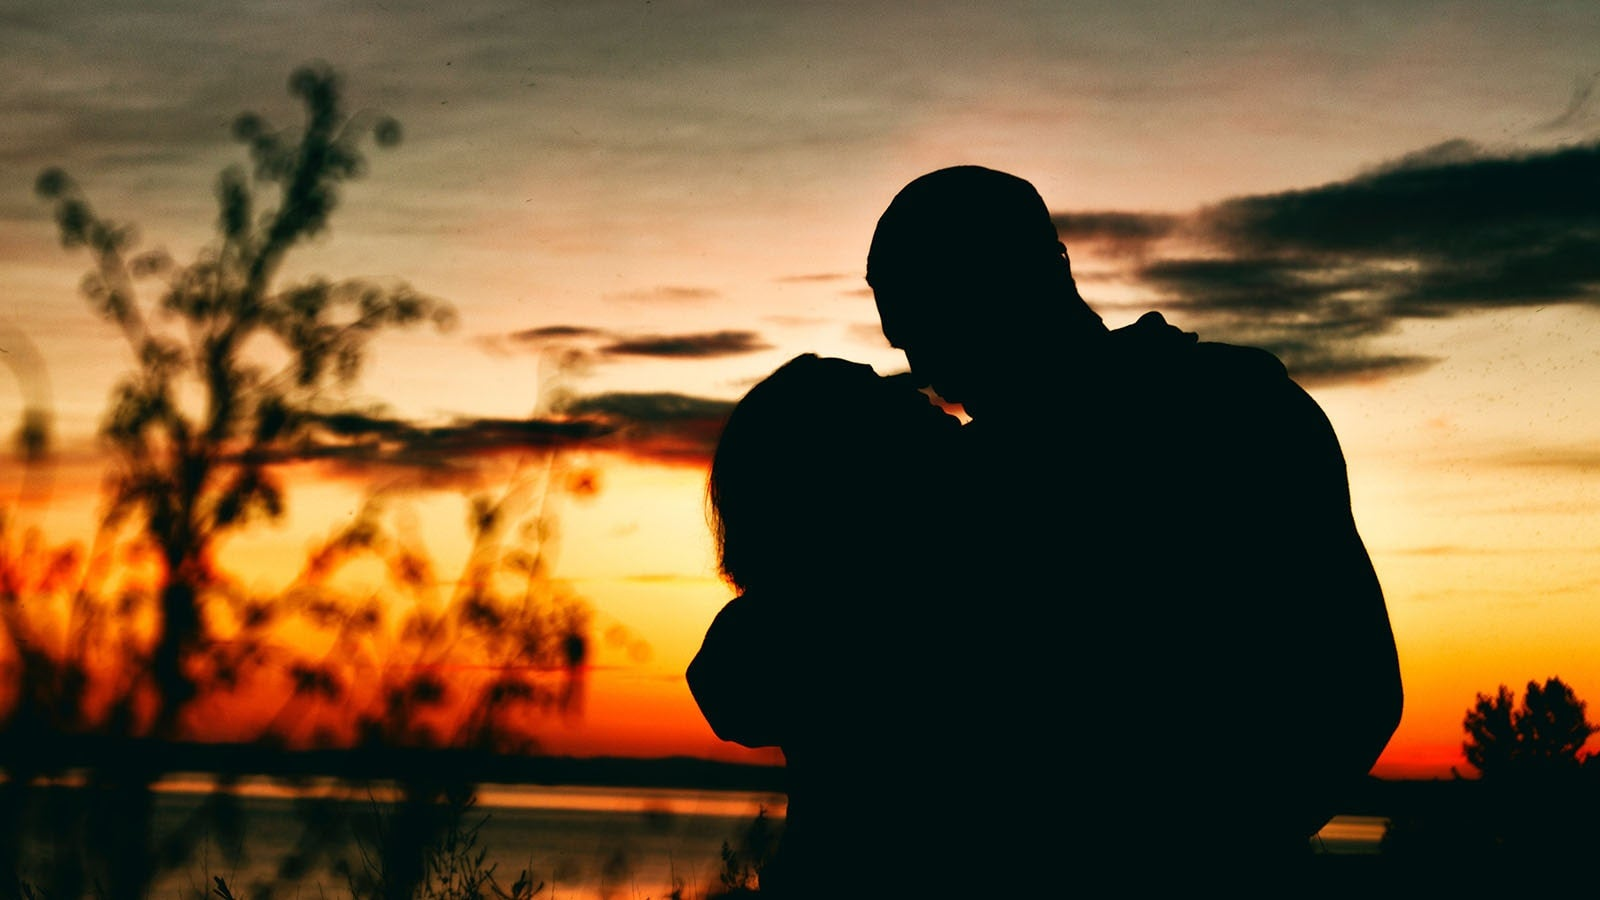 Silhouette of couple about to kiss at sunset